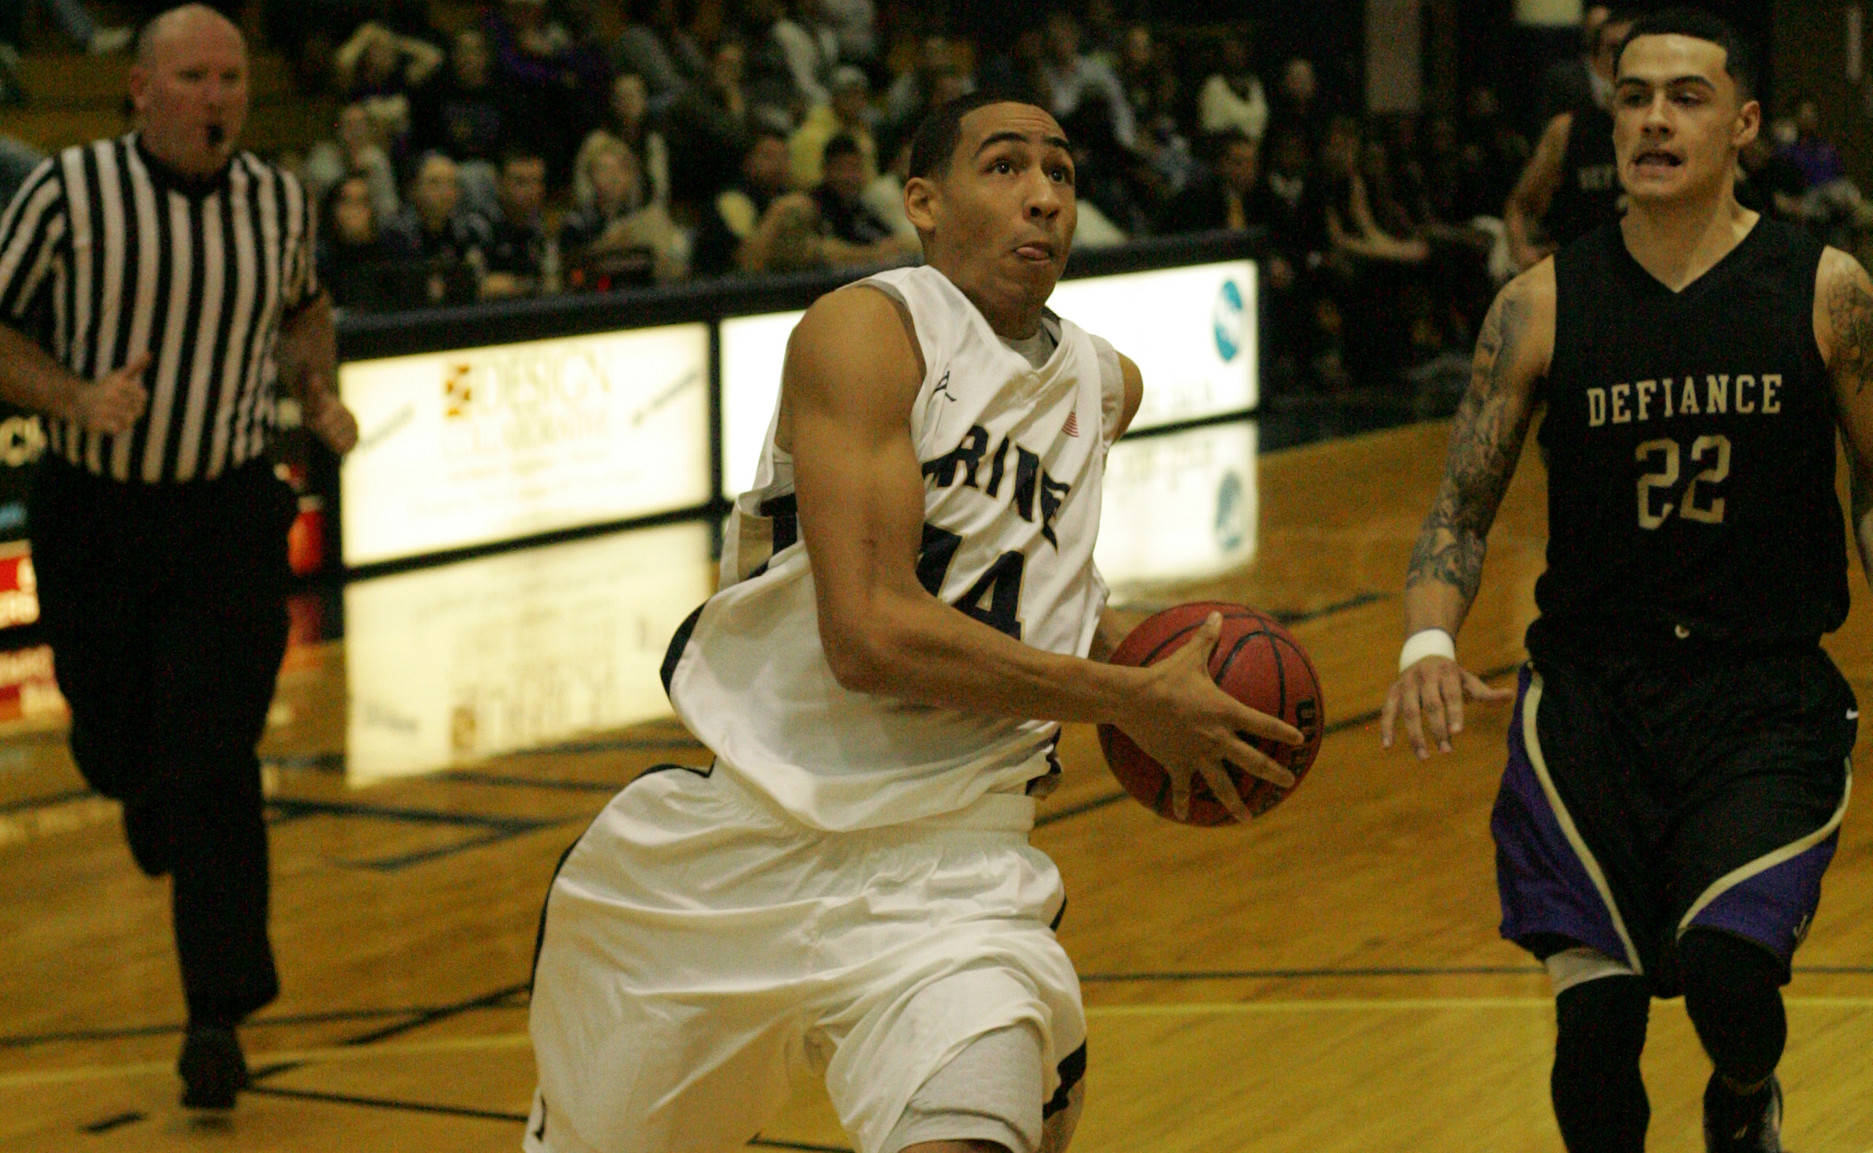 Copeland Scores 39 in Loss to Ohio Wesleyan